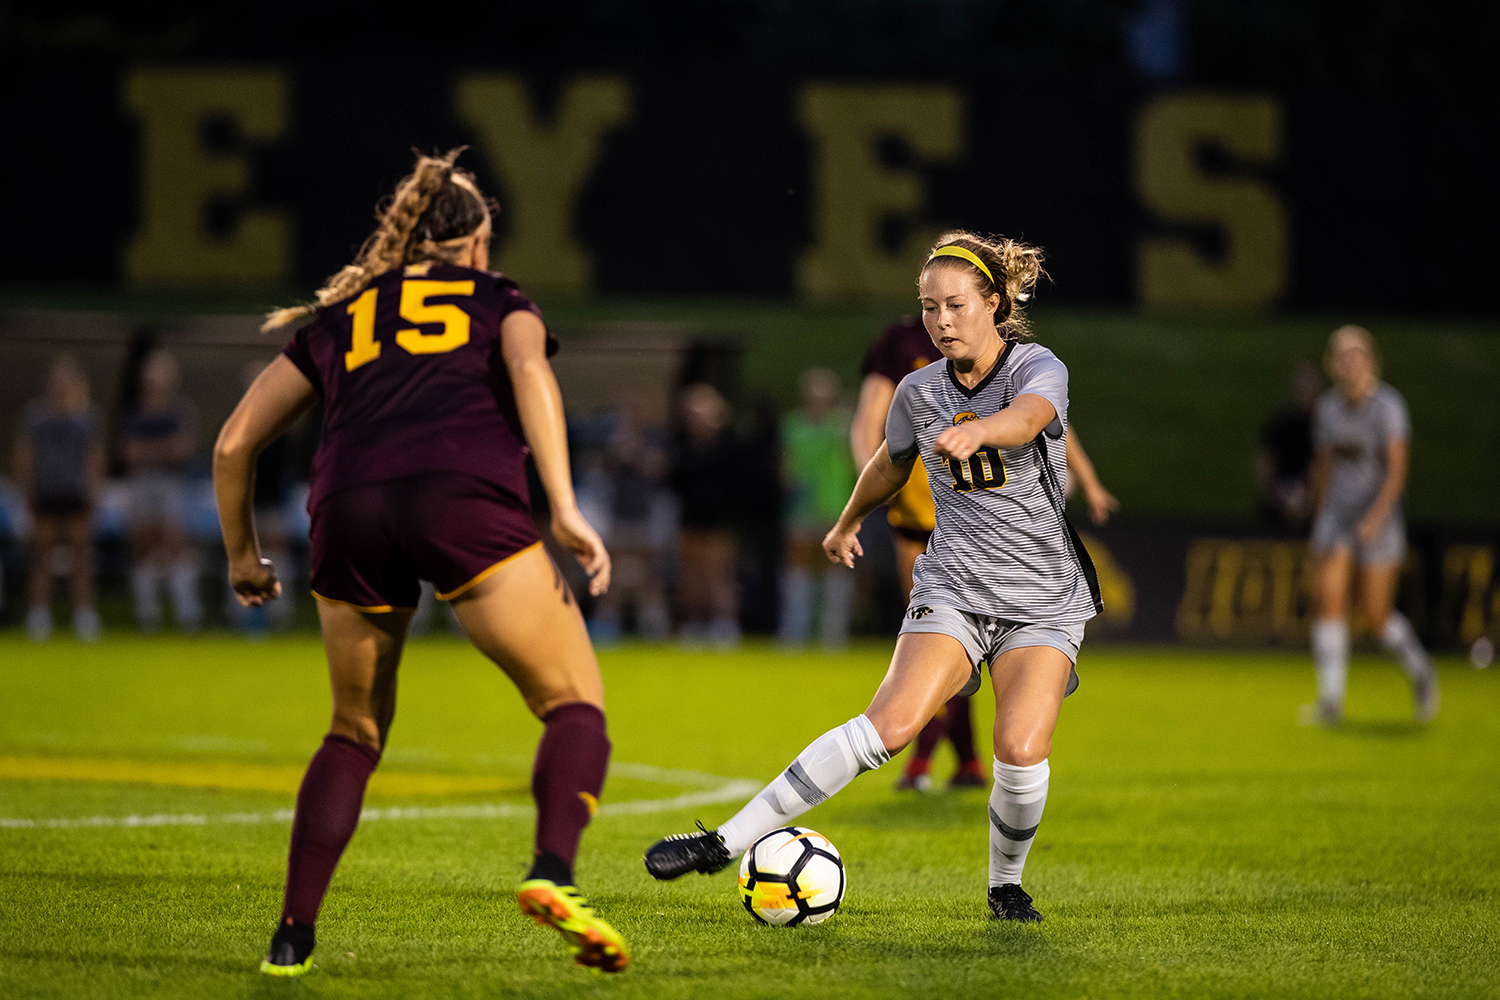 Iowa midfielder Natalie Winters plays a pass during Iowa's game against Central Michigan on Friday, Aug. 31, 2018. The Hawkeyes defeated the Chippewas 3-1. Winters scored the Hawkeyes' third goal on a penalty kick in the second half.